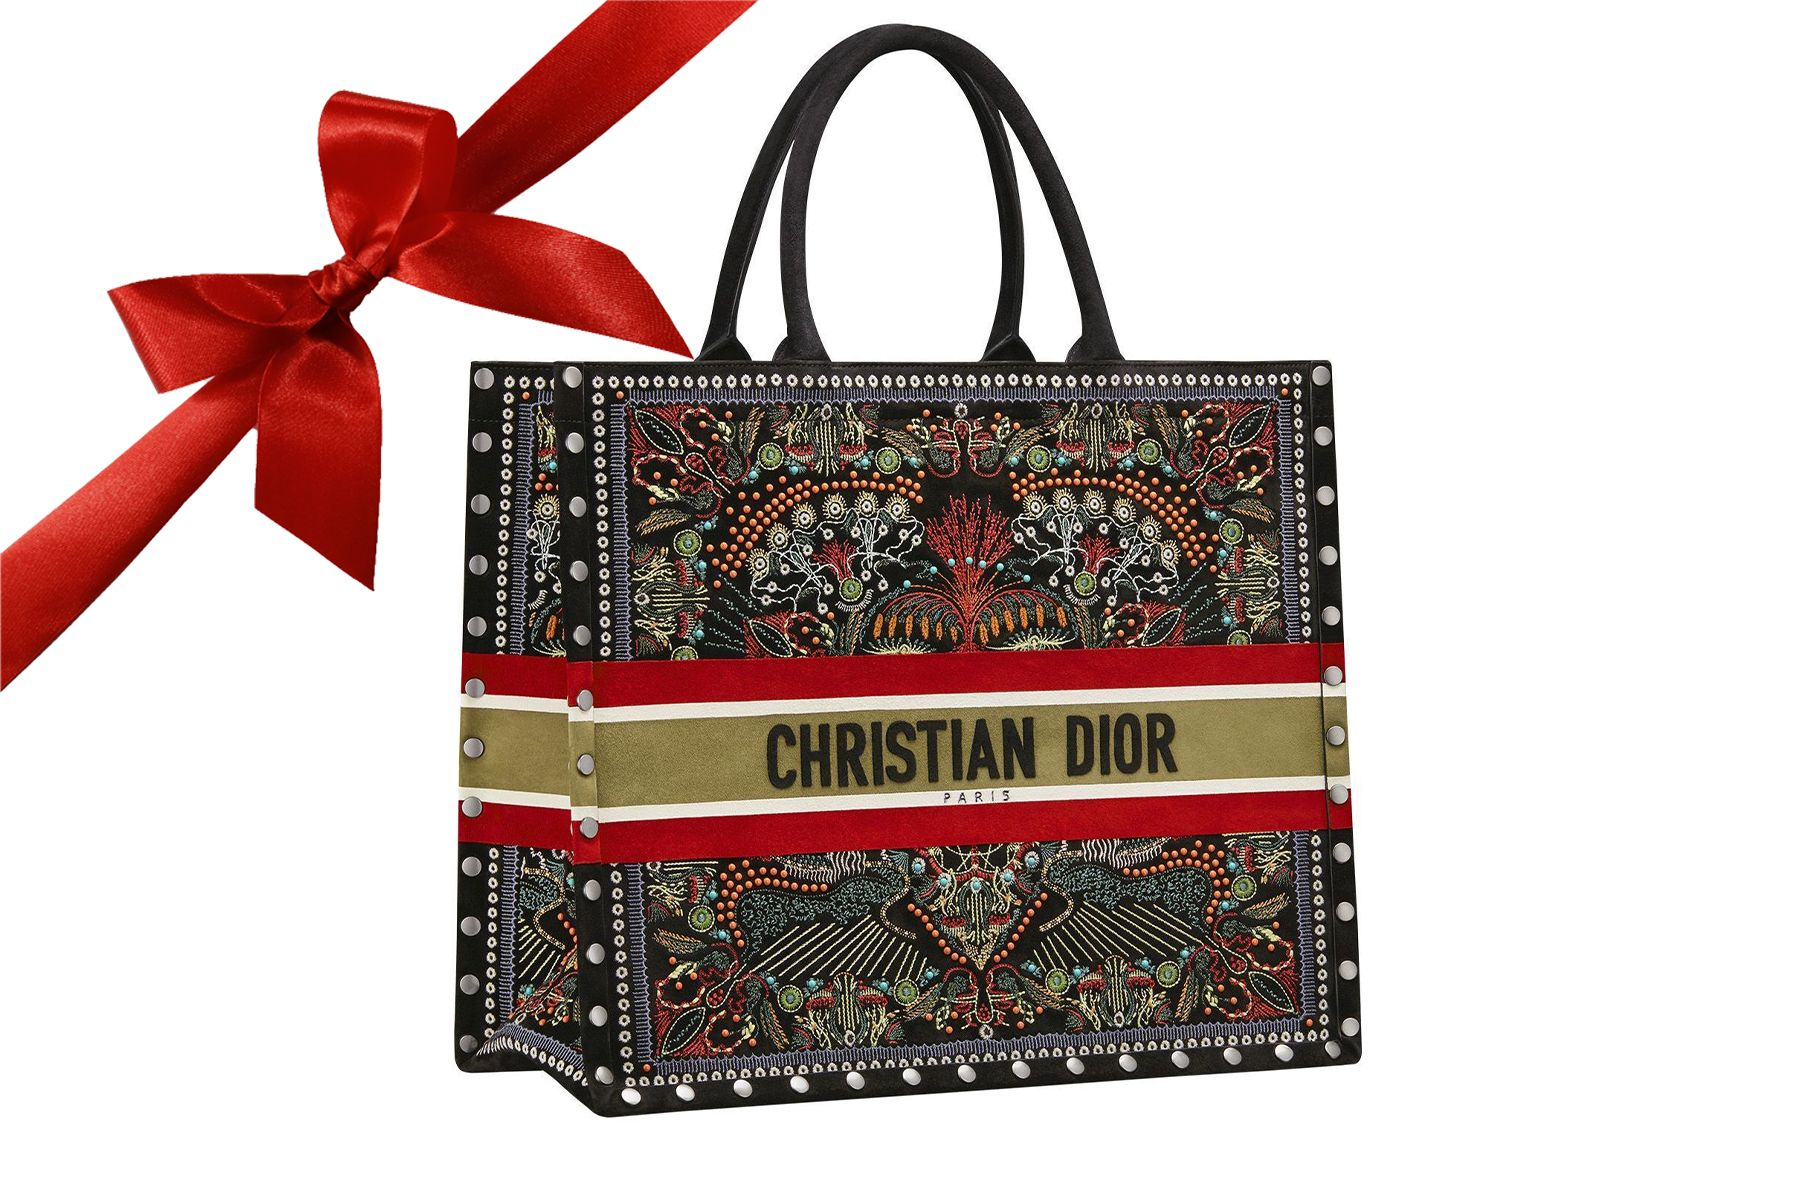 Christmas Gift Guide 2020: The Best Luxury Gifts For the Fashion-Forward